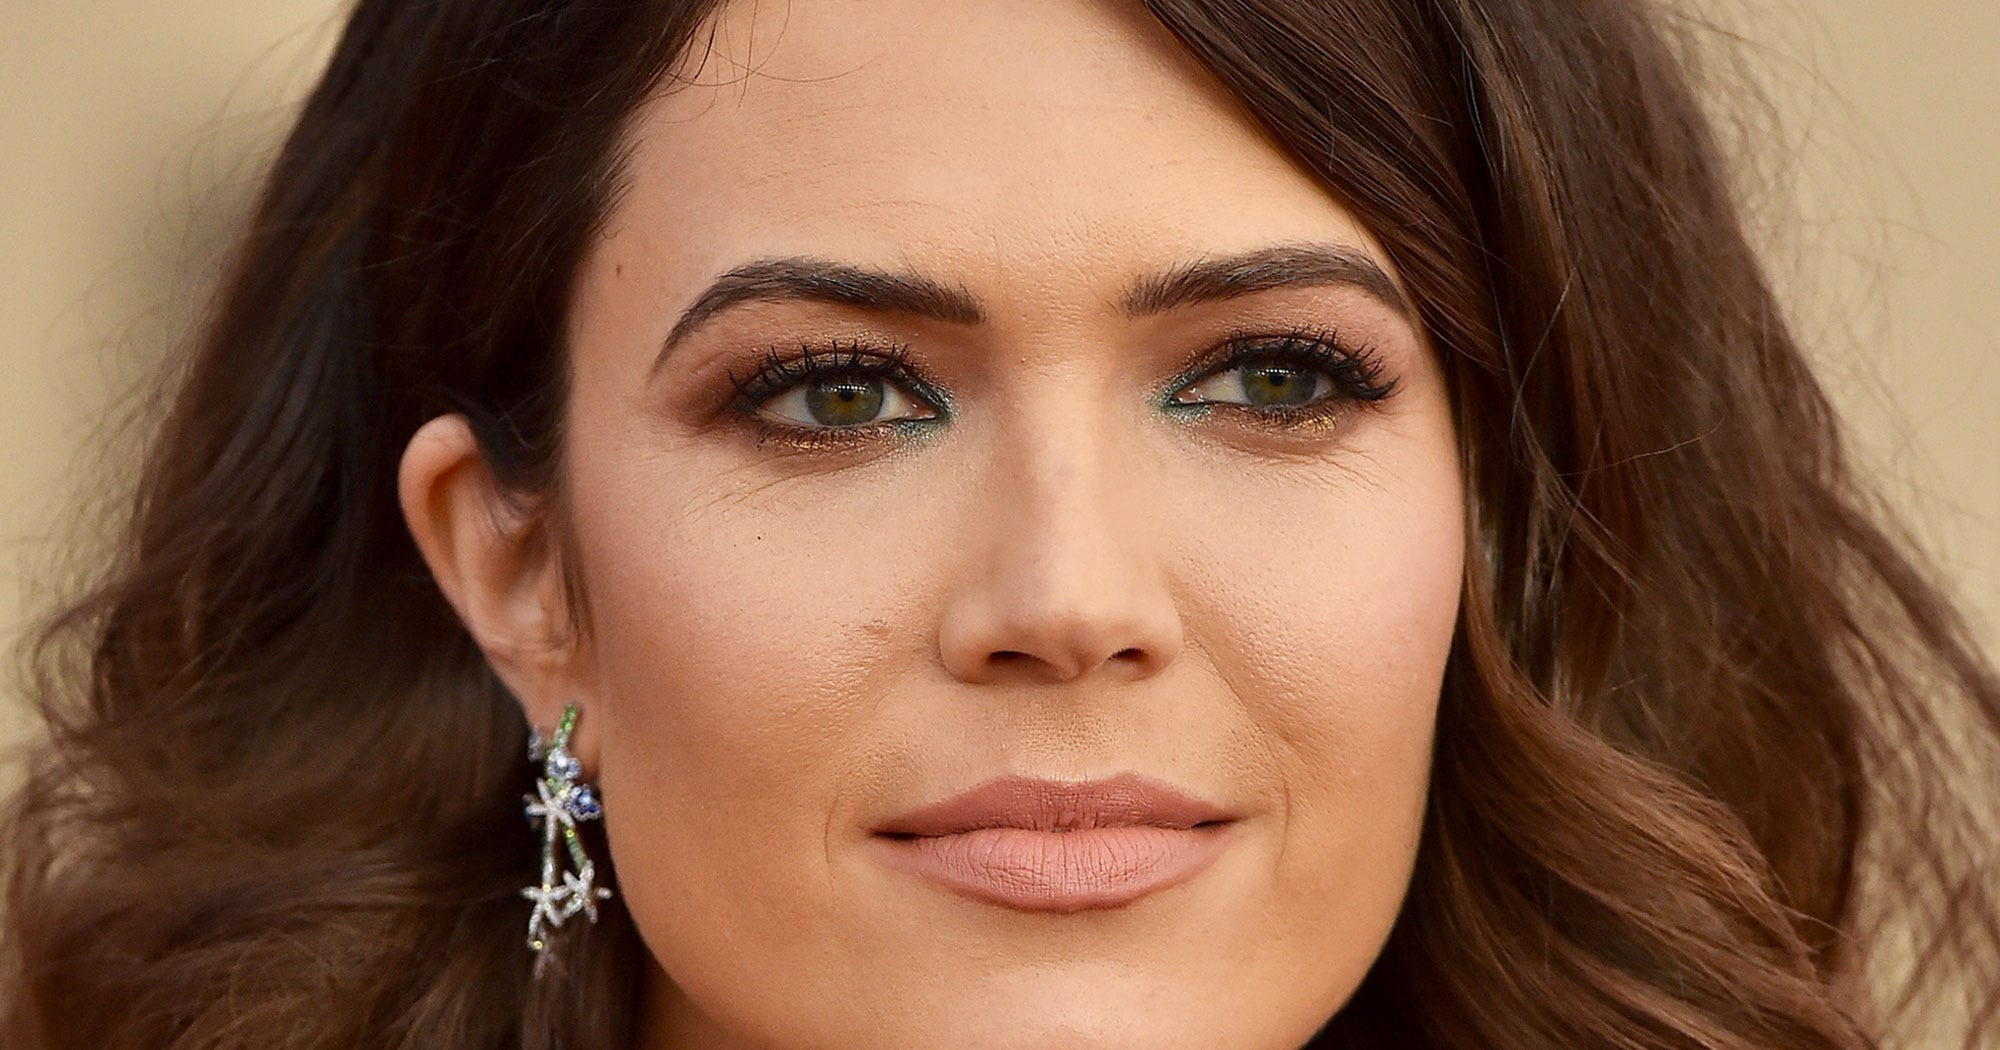 This Teeny-Tiny Makeup Trick Makes A HUGE Difference